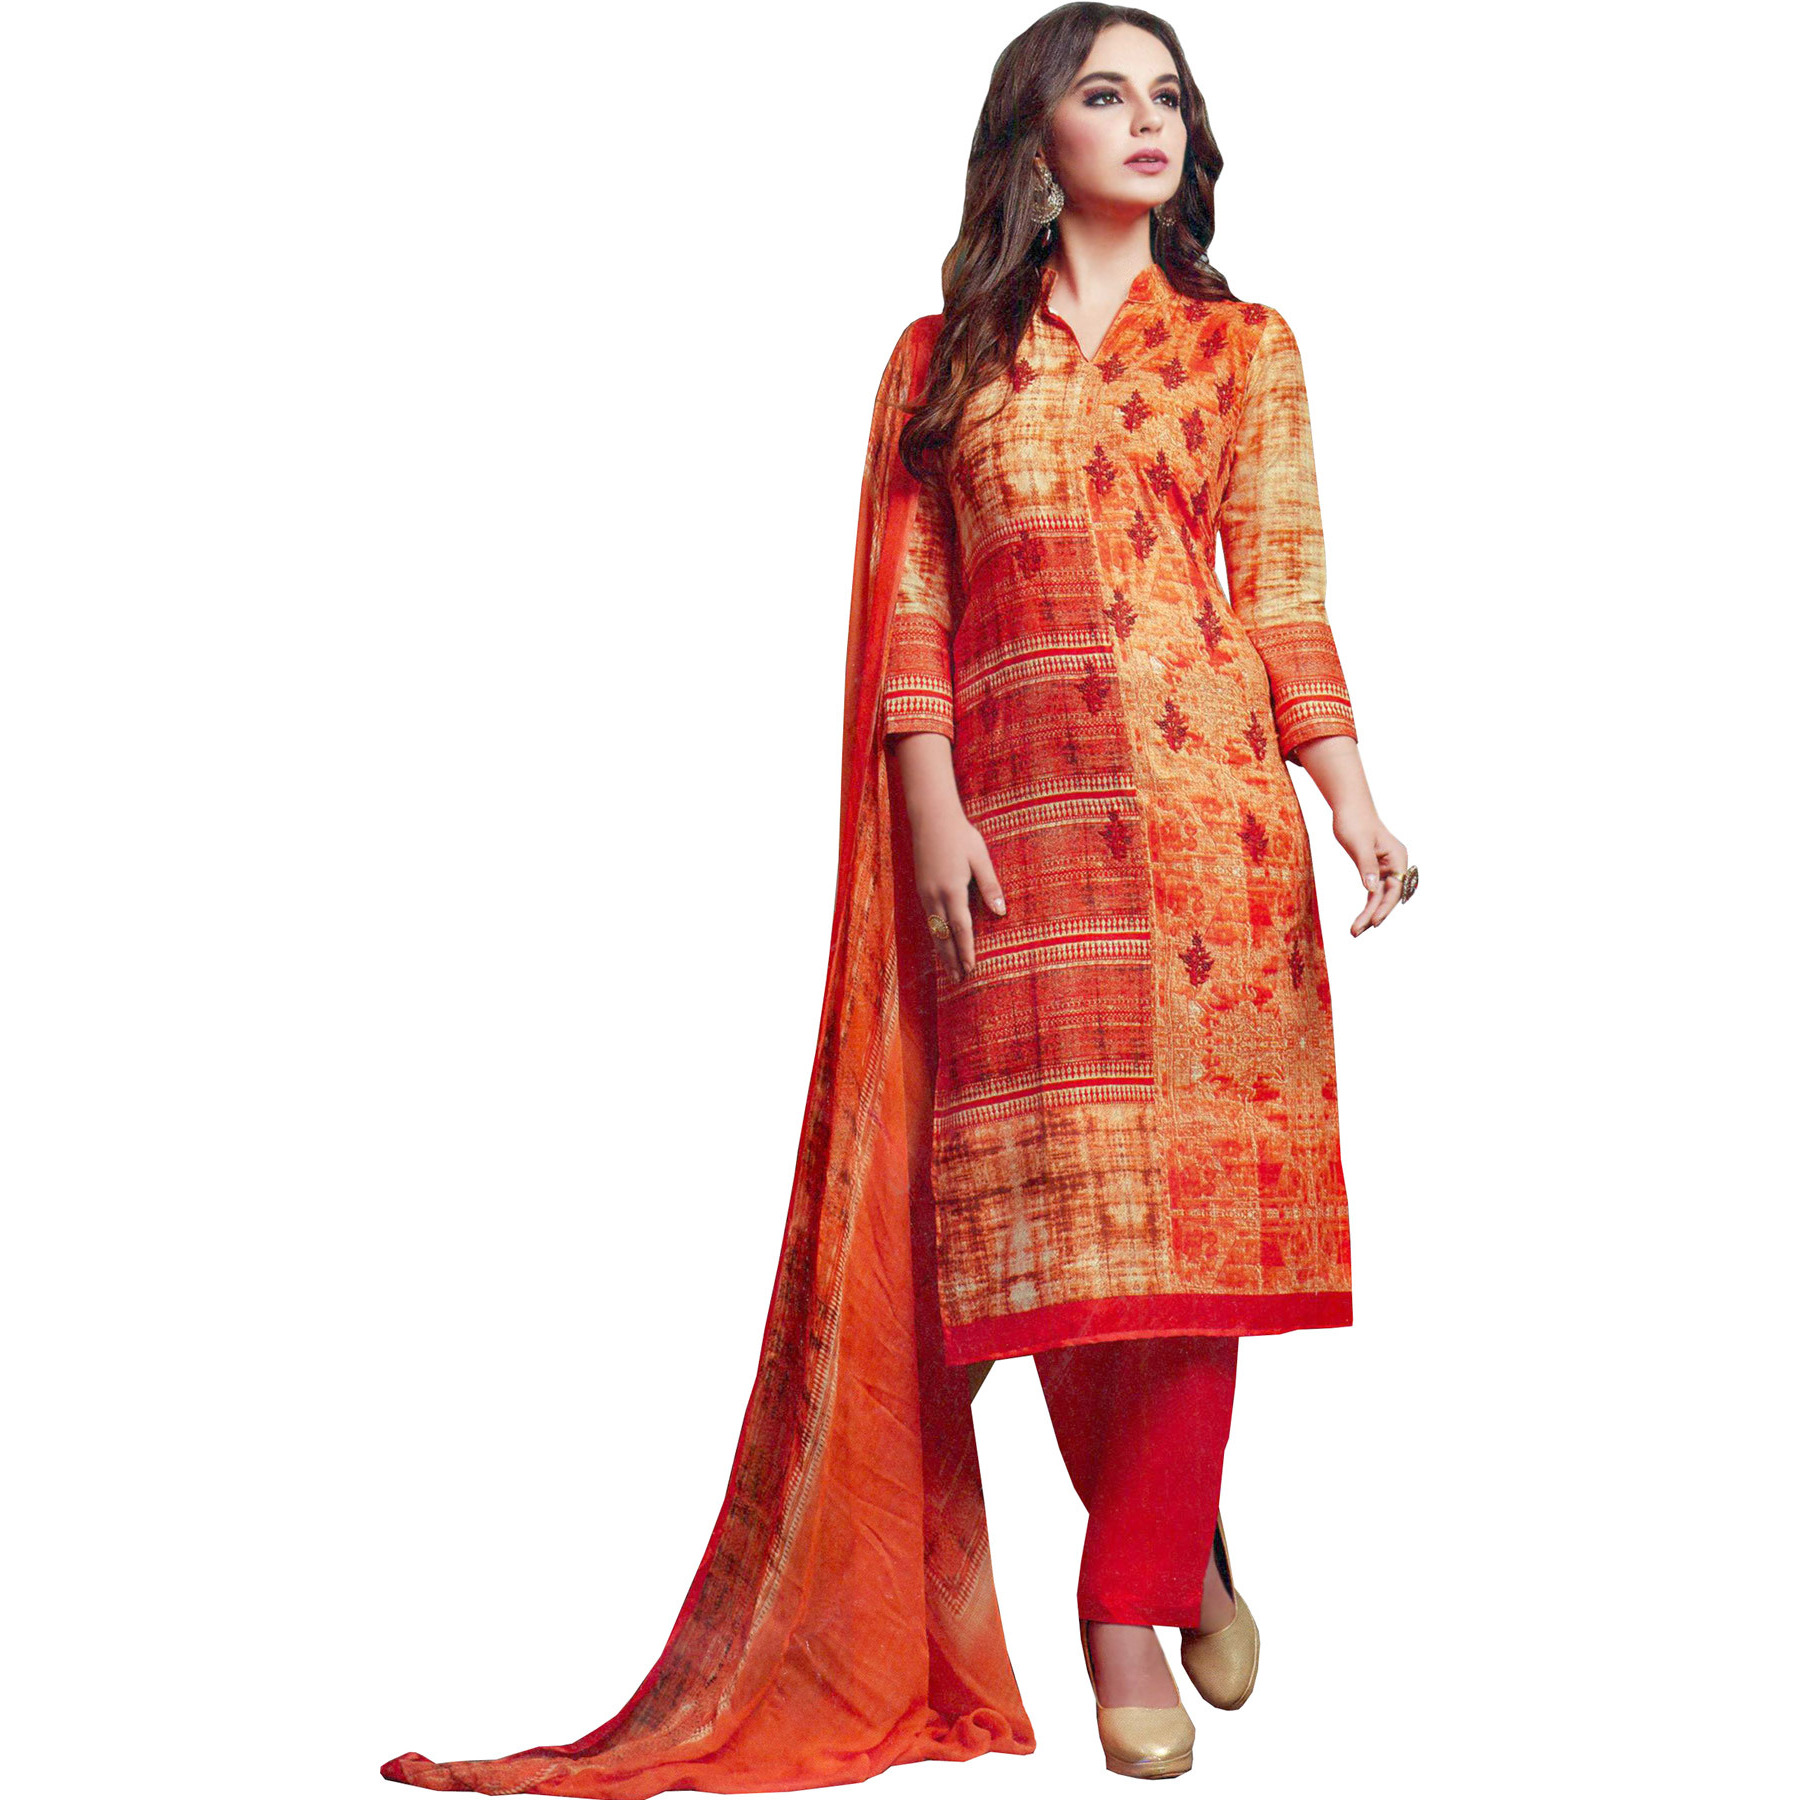 Melon-Orange Printed Parallel Salwar Suit with Embroidered Bootis and Chiffon Dupatta